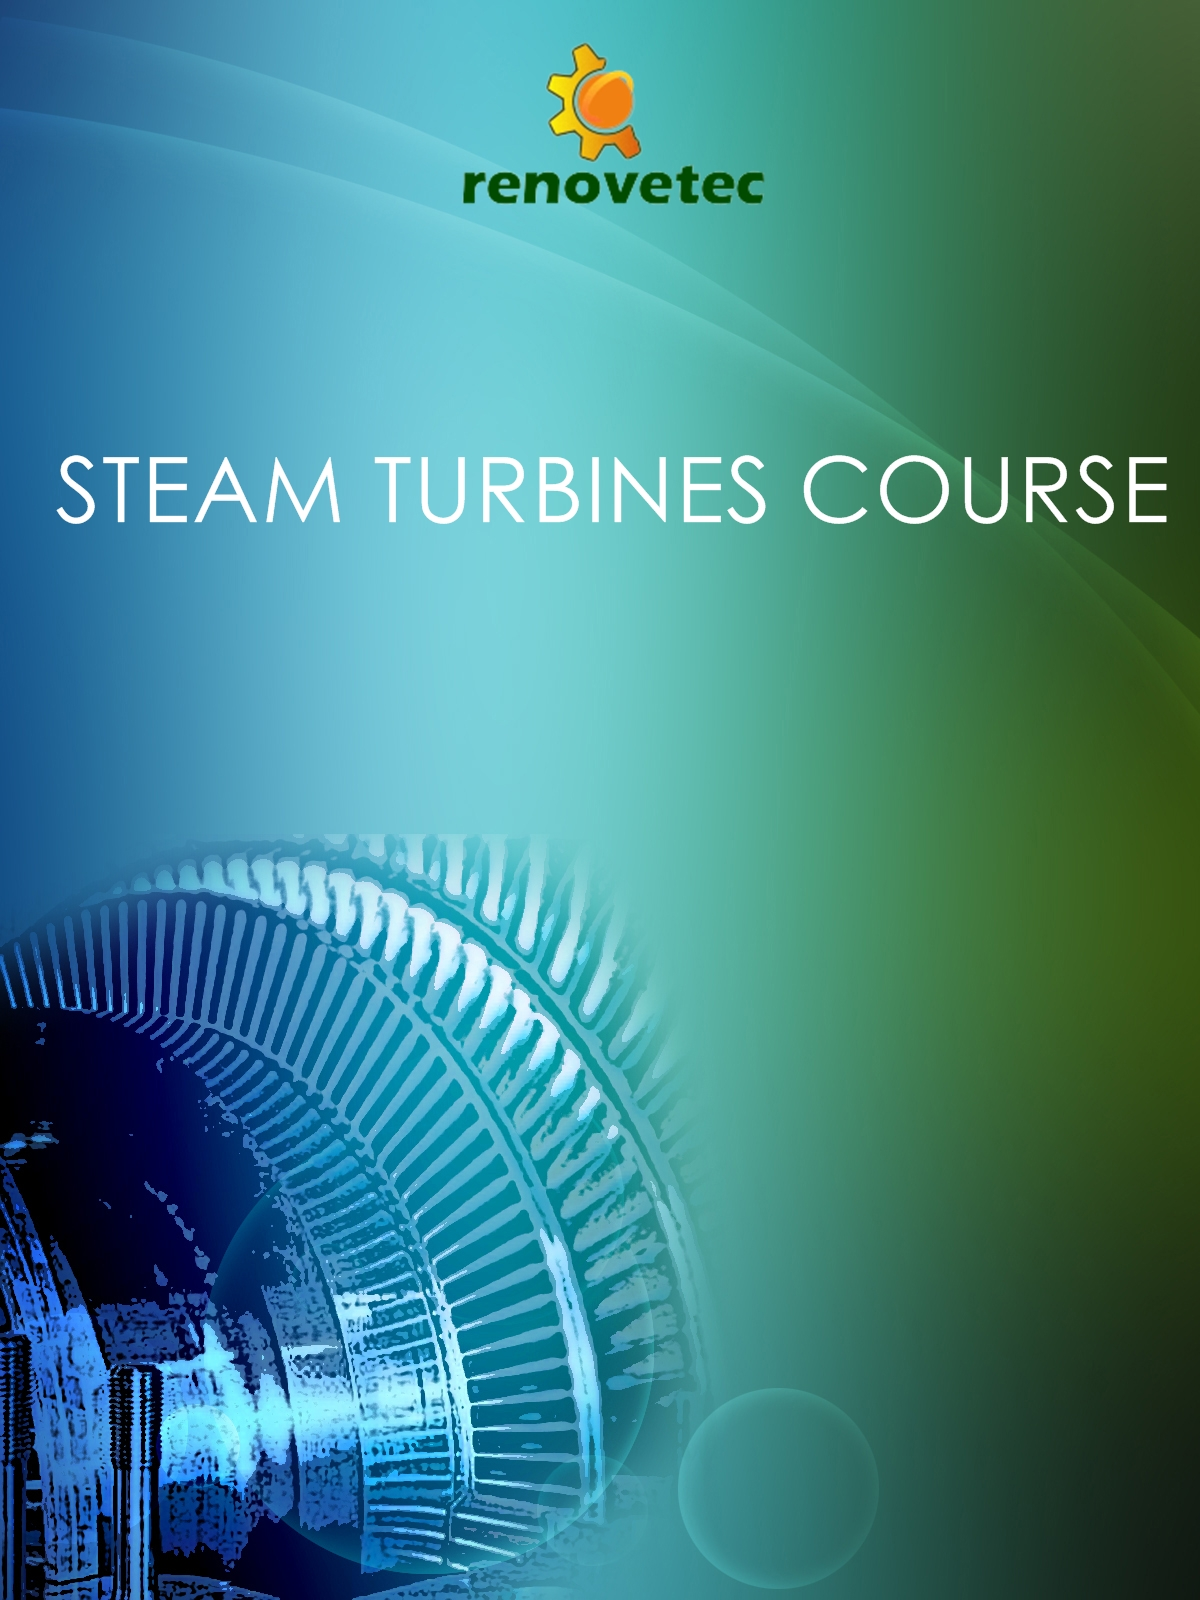 RENOVETEC Steam Turbines Course